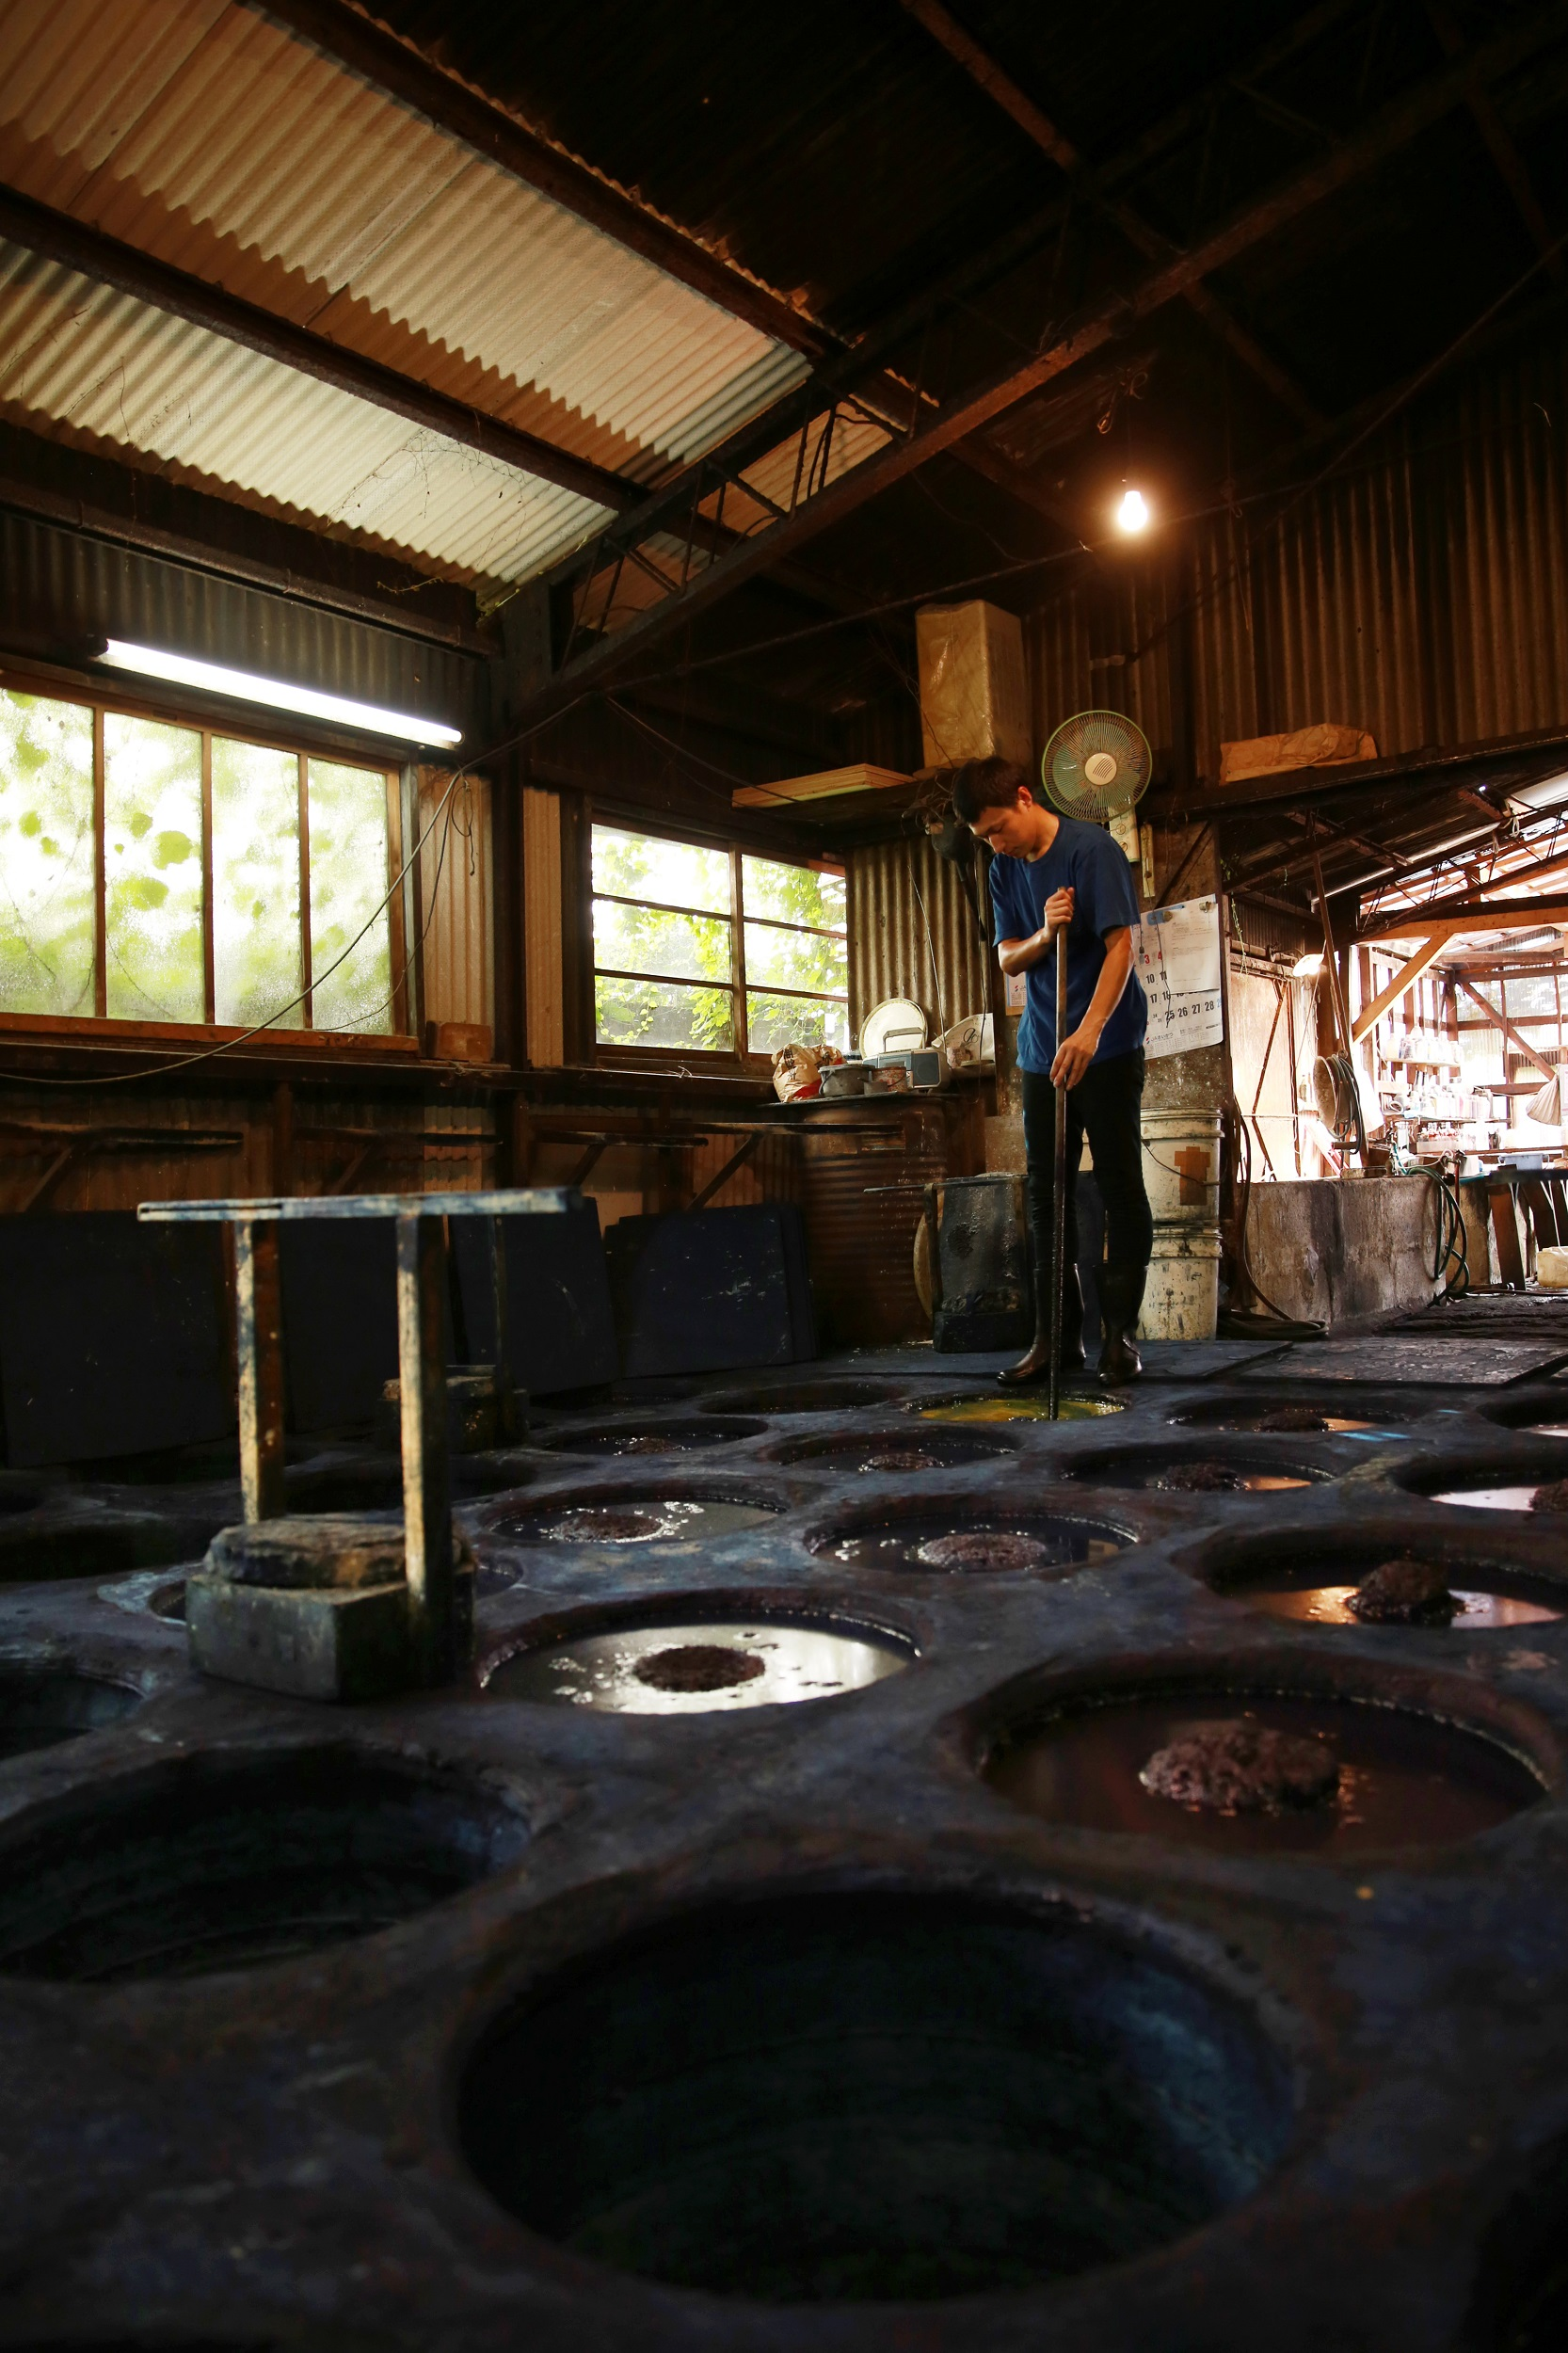 All done by hand with attention and care. The indigo dyeing process using indigo vats at their own dye workshop.